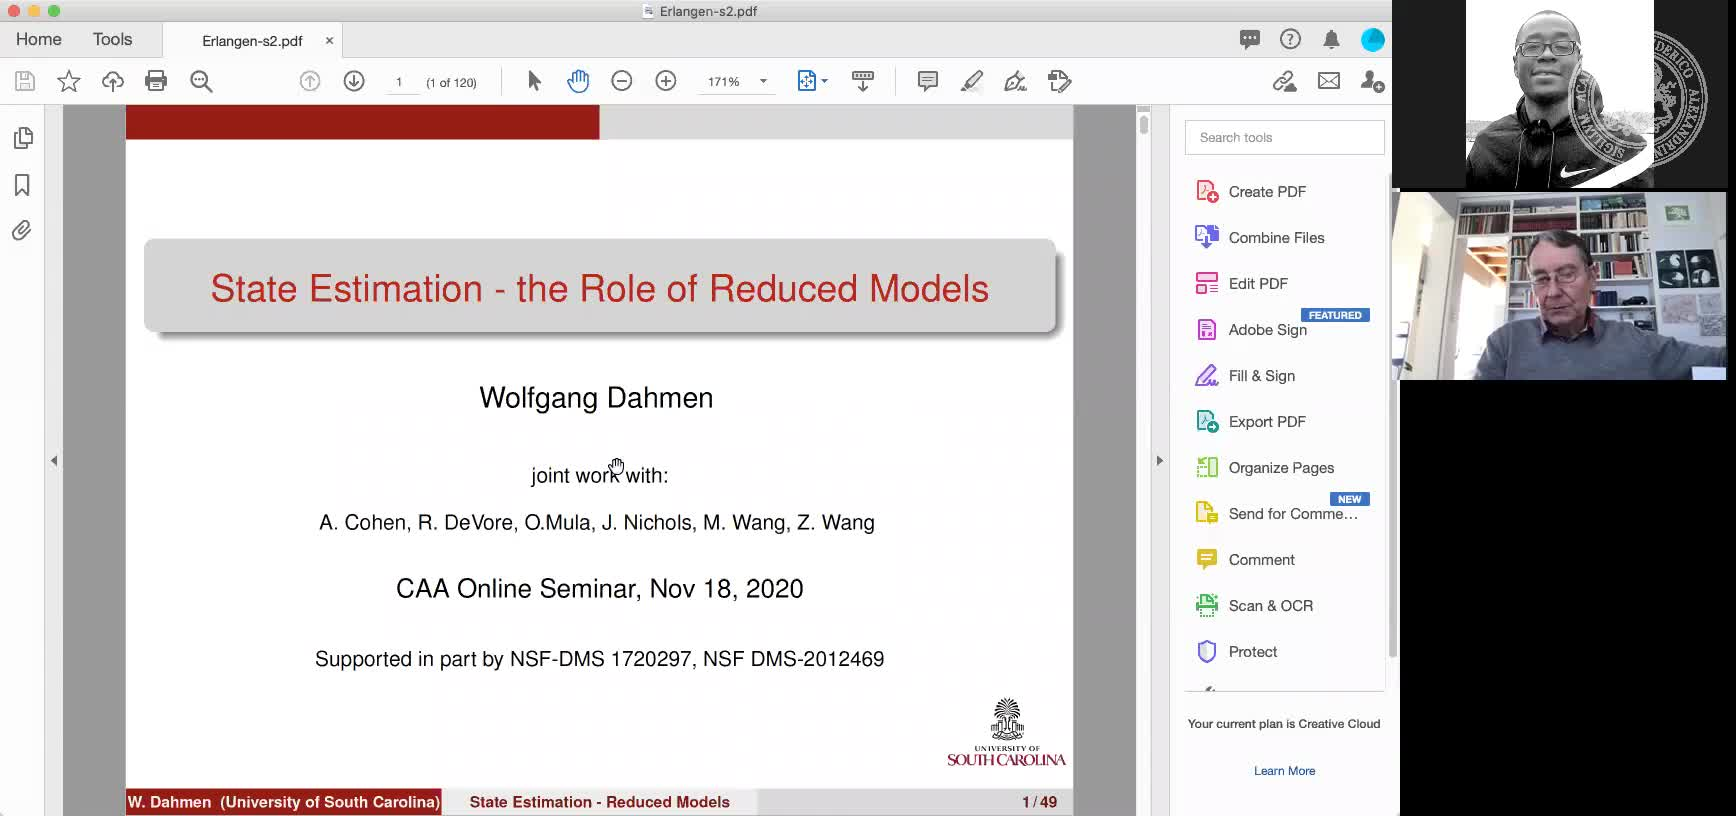 State Estimation – the Role of Reduced Models (Wolfgang Dahmen, University of South Carolina) preview image